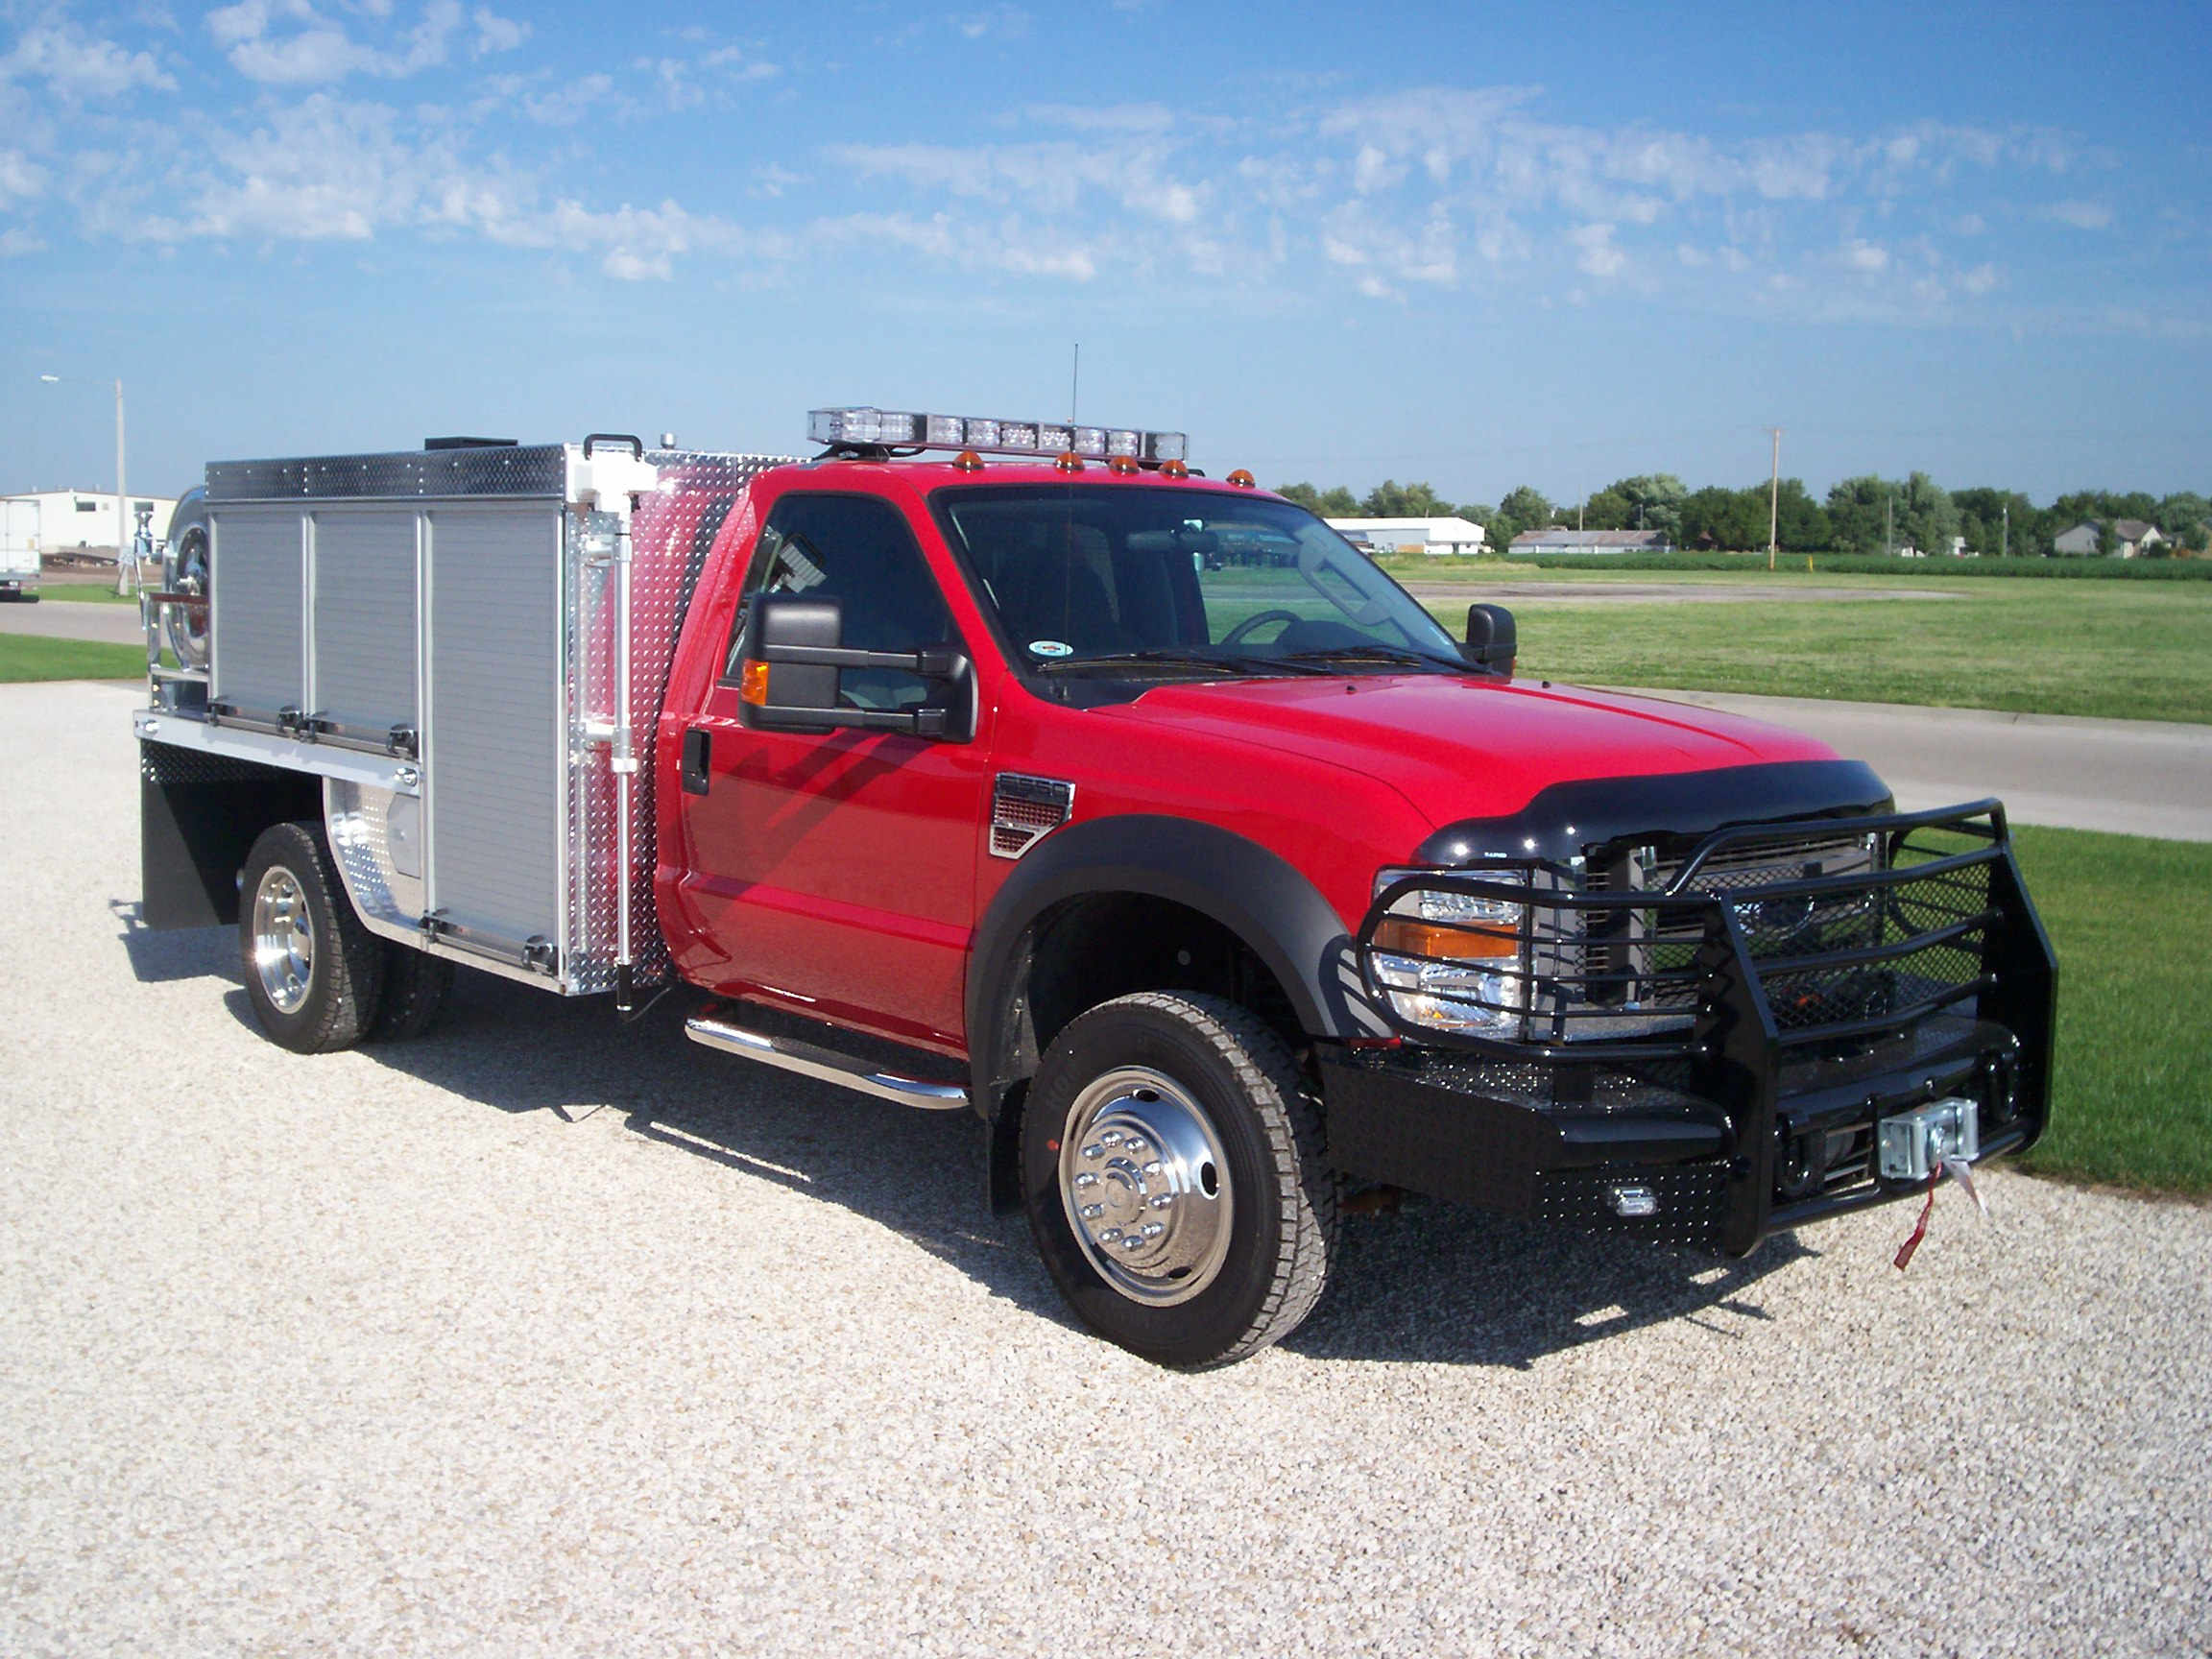 This vehicle offers brush truck features and configuration with a transverse rescue-style compartment. & Brush Truck Rescue Compartment - Unruh Fire